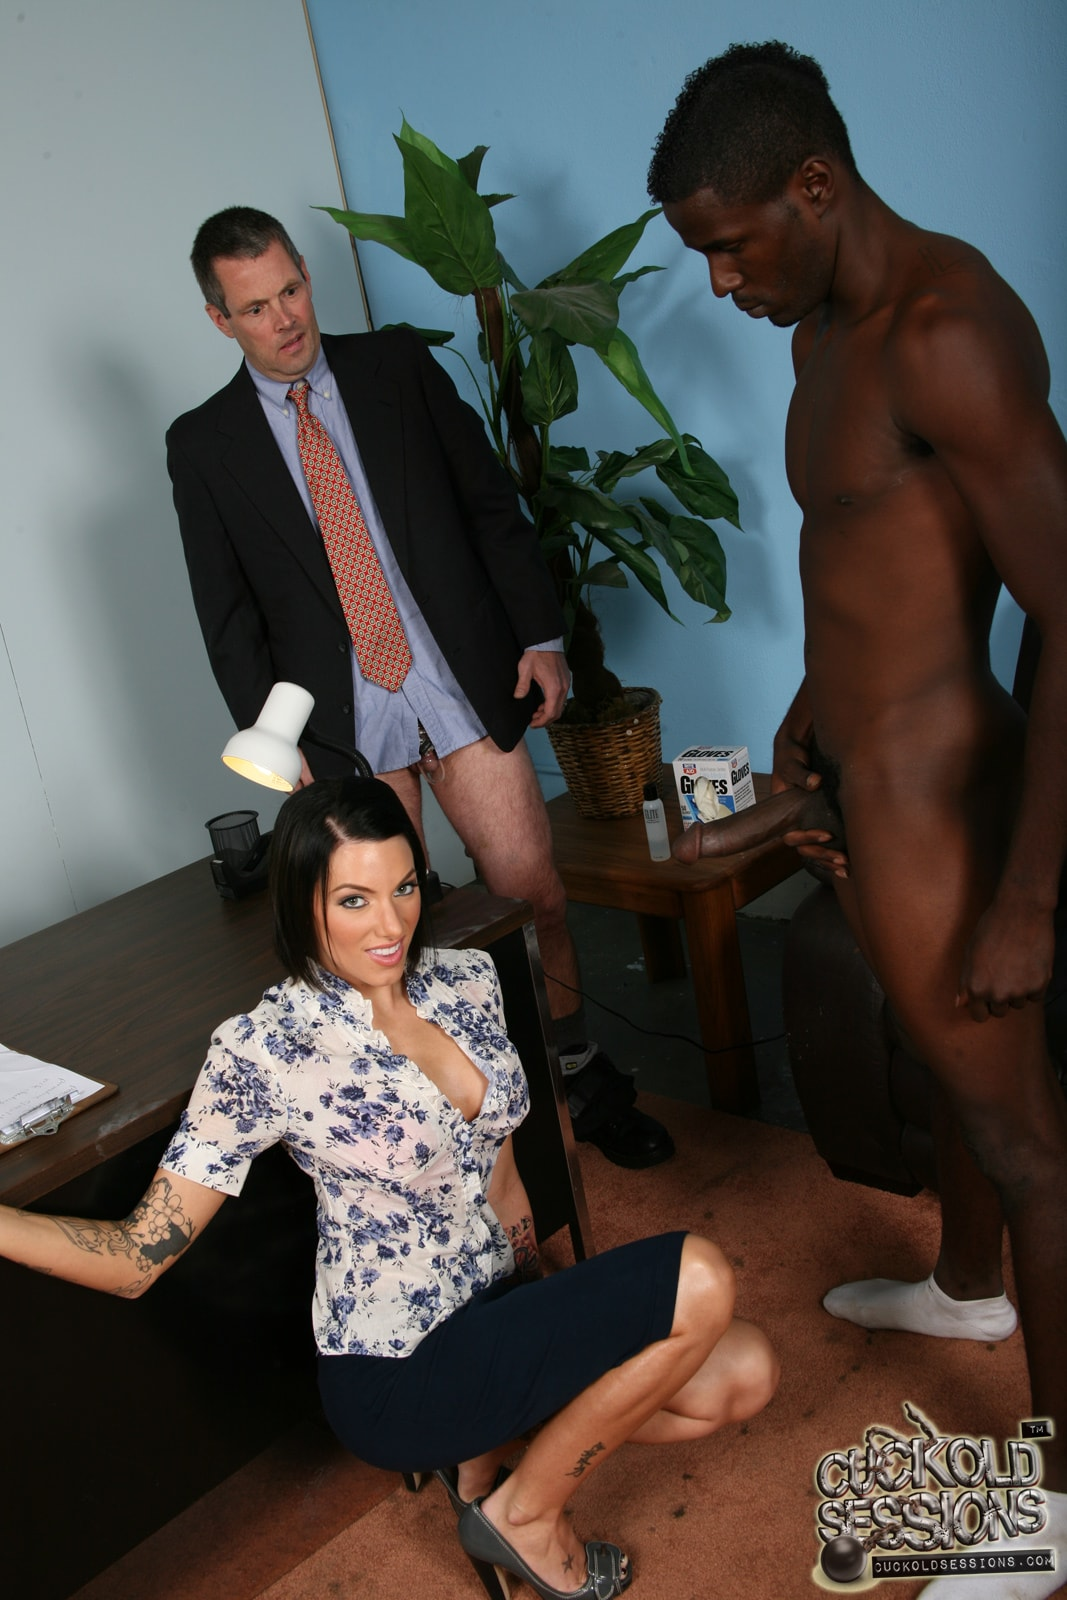 Dogfart 'Juelz Ventura - Cuckold Sessions' starring Juelz Ventura (photo 12)